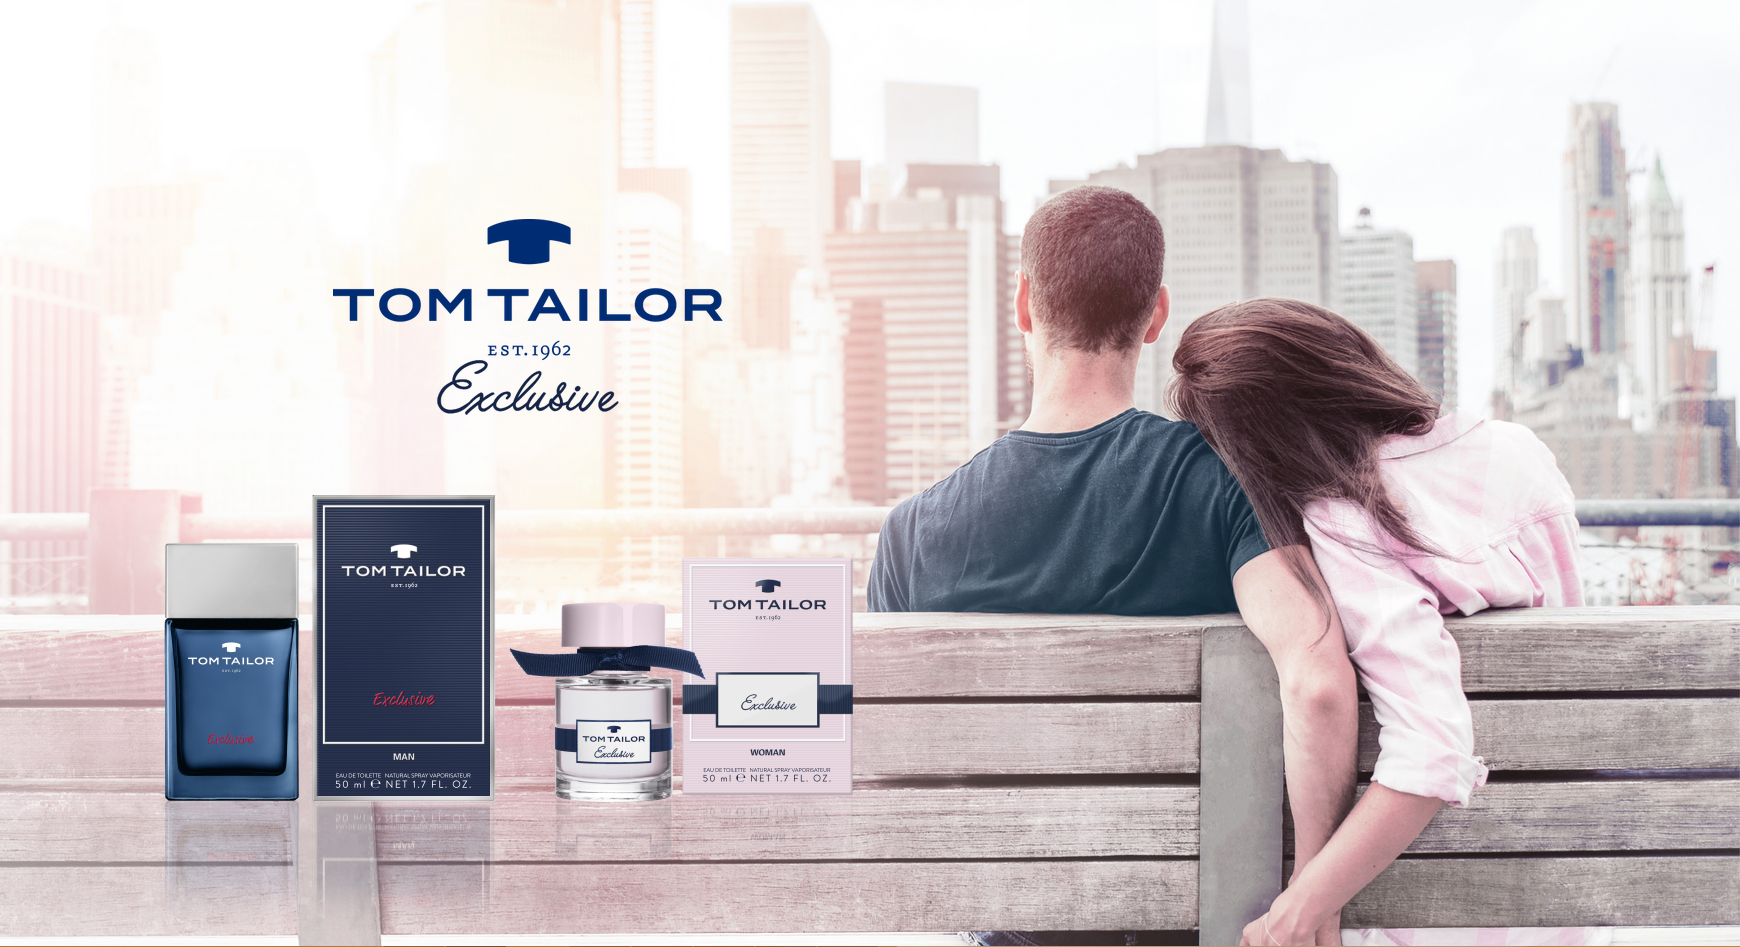 Tom Tailoer Tom Tailor Exclusive Man Tom Tailor ماء كولونيا A Fragrance